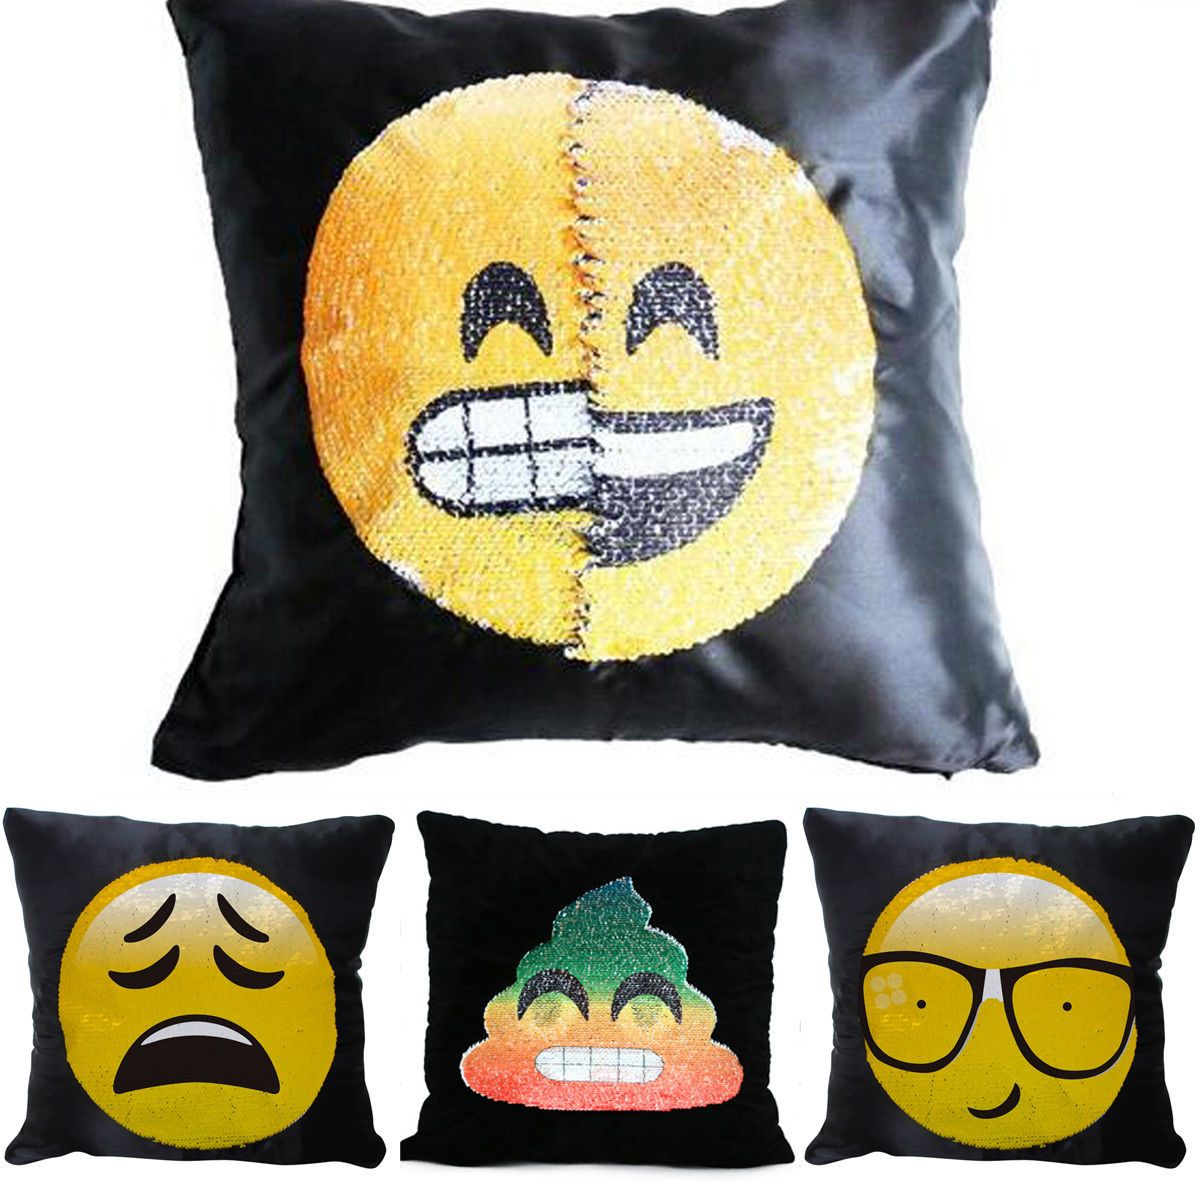 Sequin emoji pillow cushion cover reversible changing face